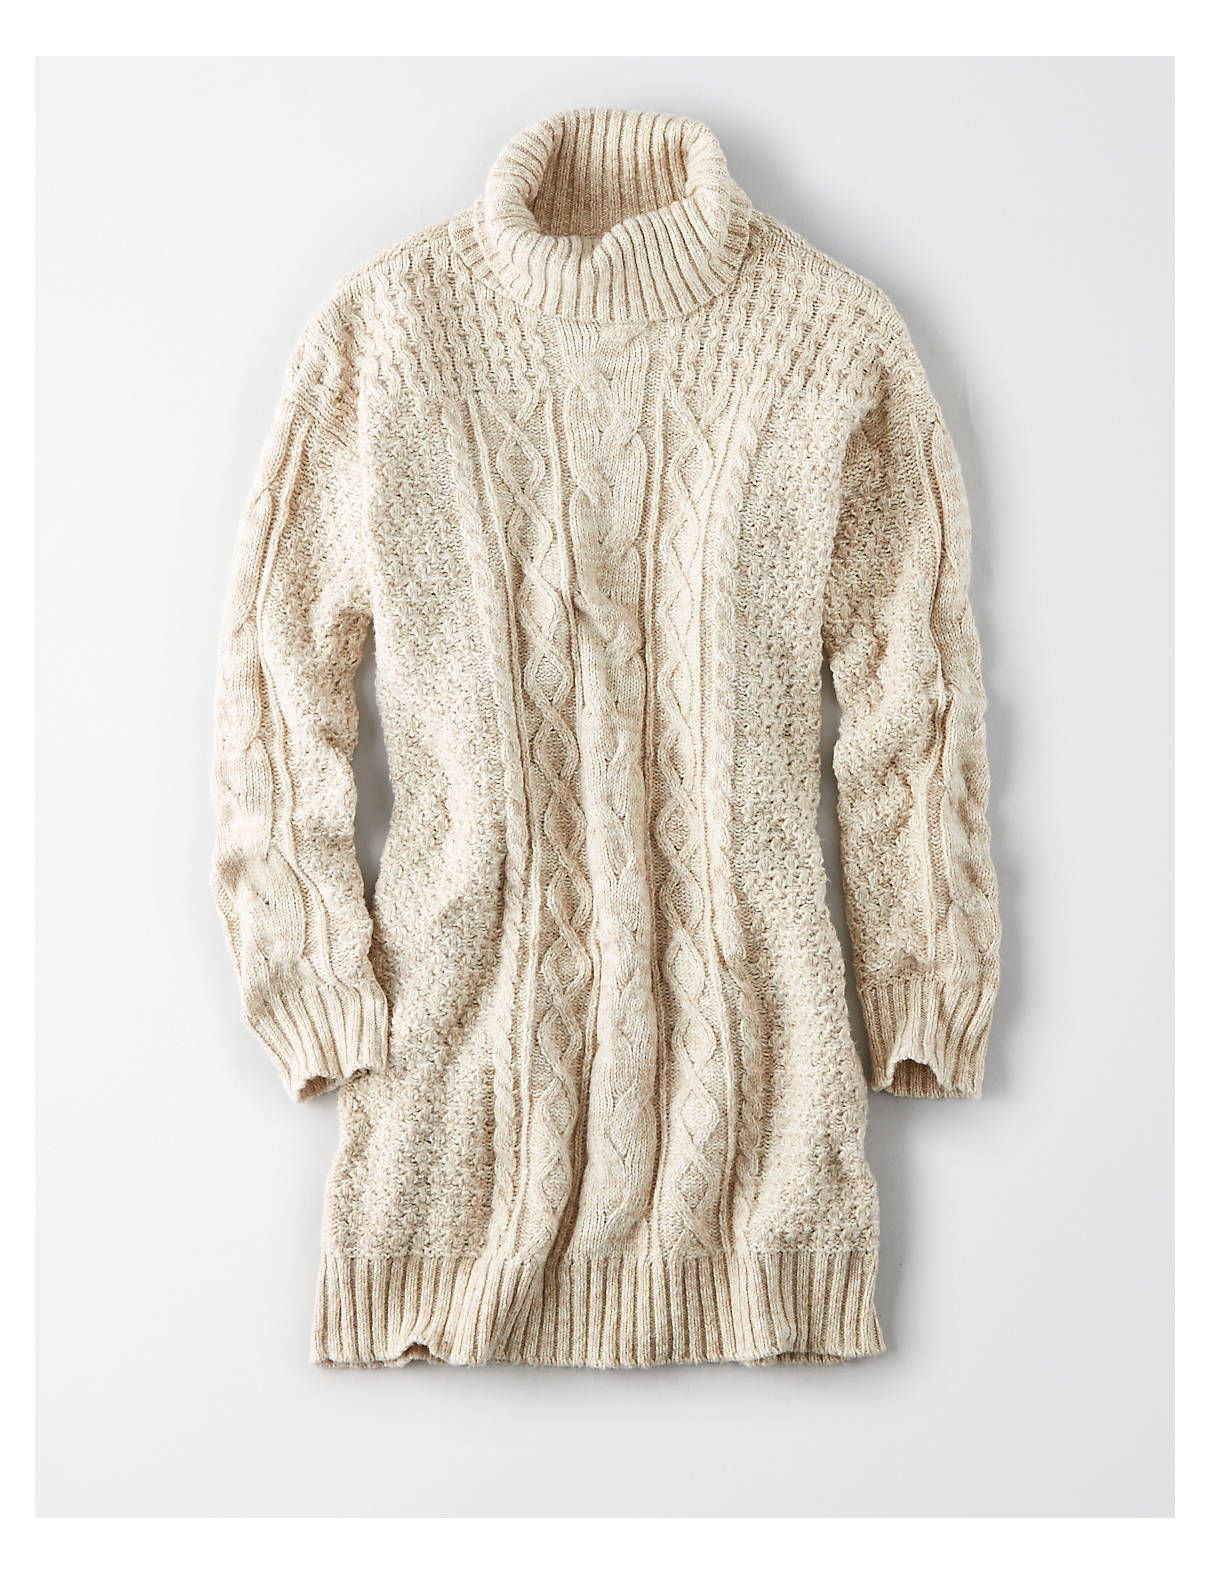 56c20ff9e4f AE Turtleneck Cable Knit Sweater Dress